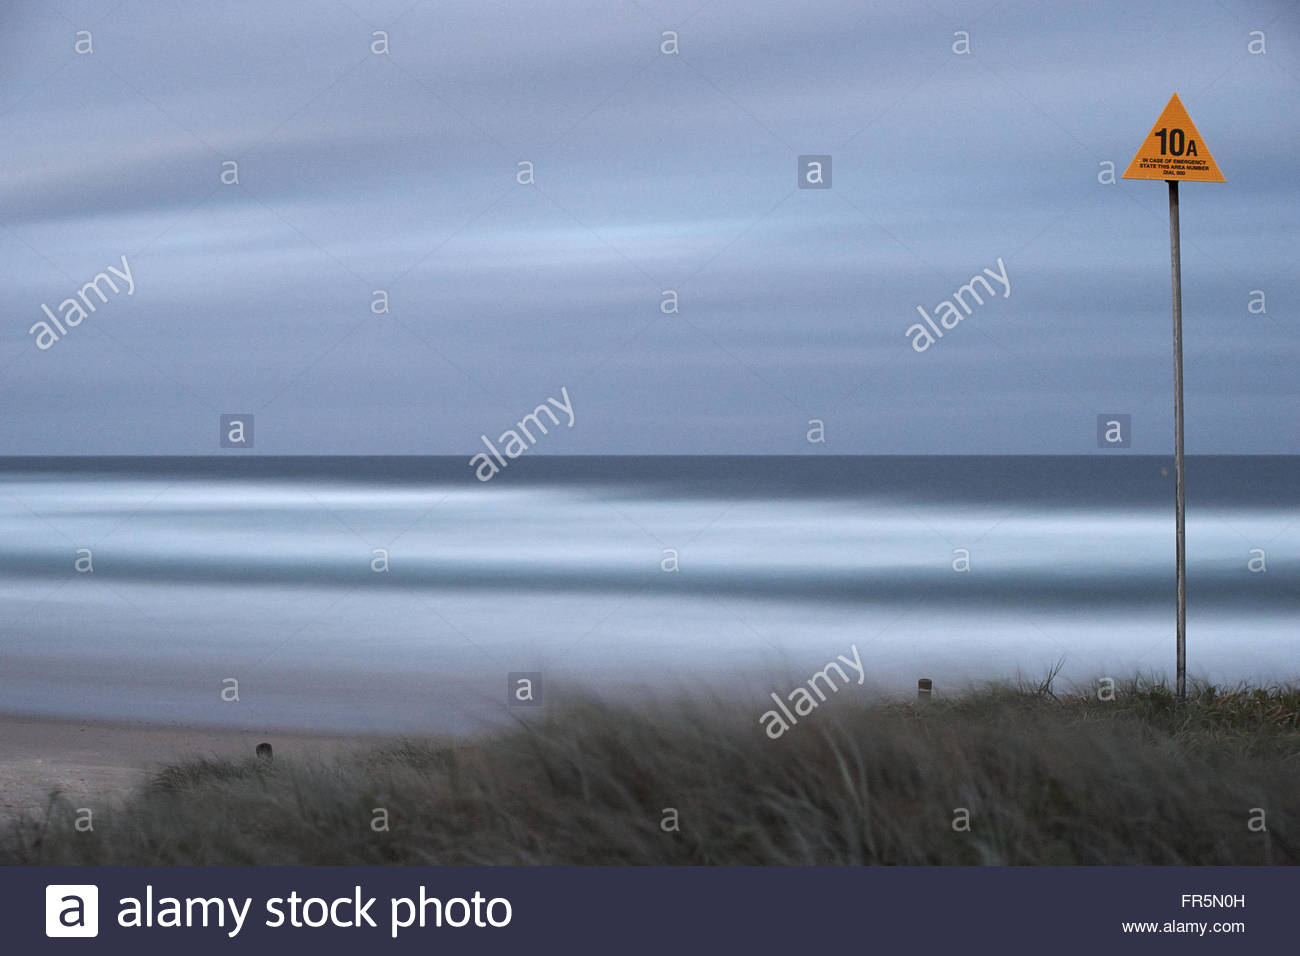 A long-exposure image of the Pacific Ocean - a yellow triangular emergency marker starkly contrasting the serenity; - Stock Image